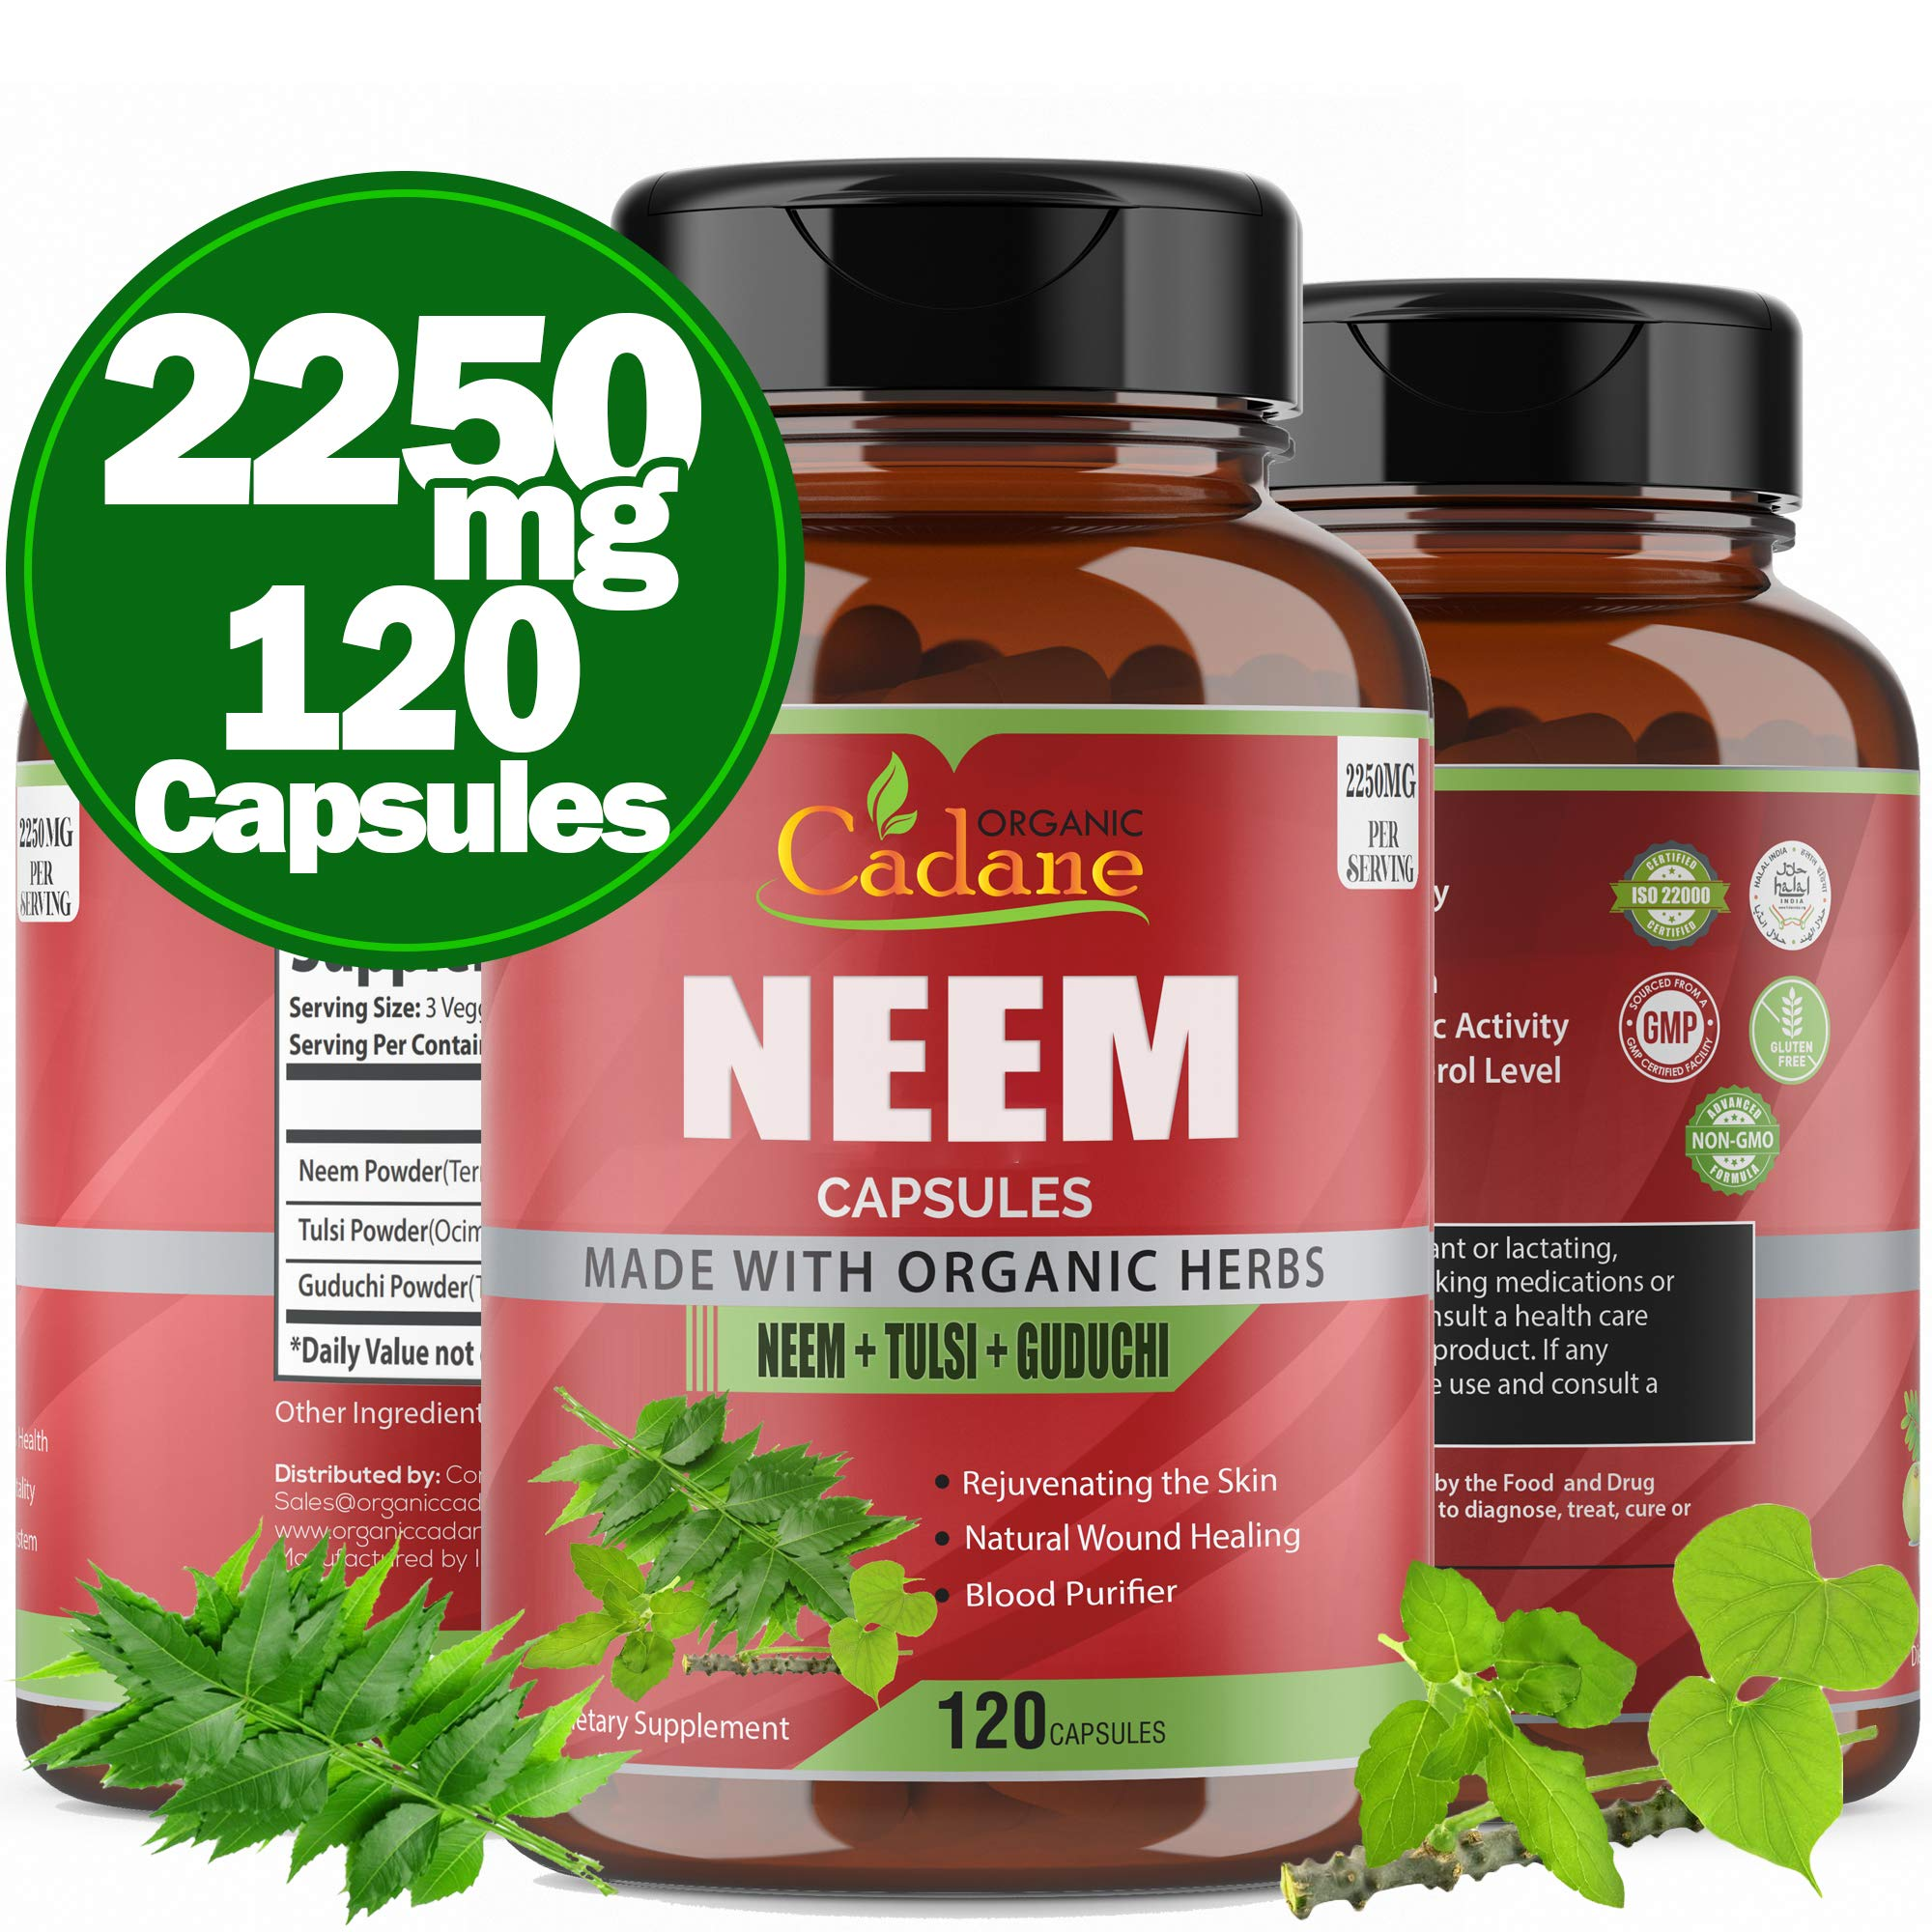 Organic Neem Leaf Powder Capsules 2250mg with Tulsi, Guduchi Extract | Blood Purifier and Detoxification Herbs | Healthy Hair and Skin Care Supplement | Support Antioxidants Immune System,120 Caps